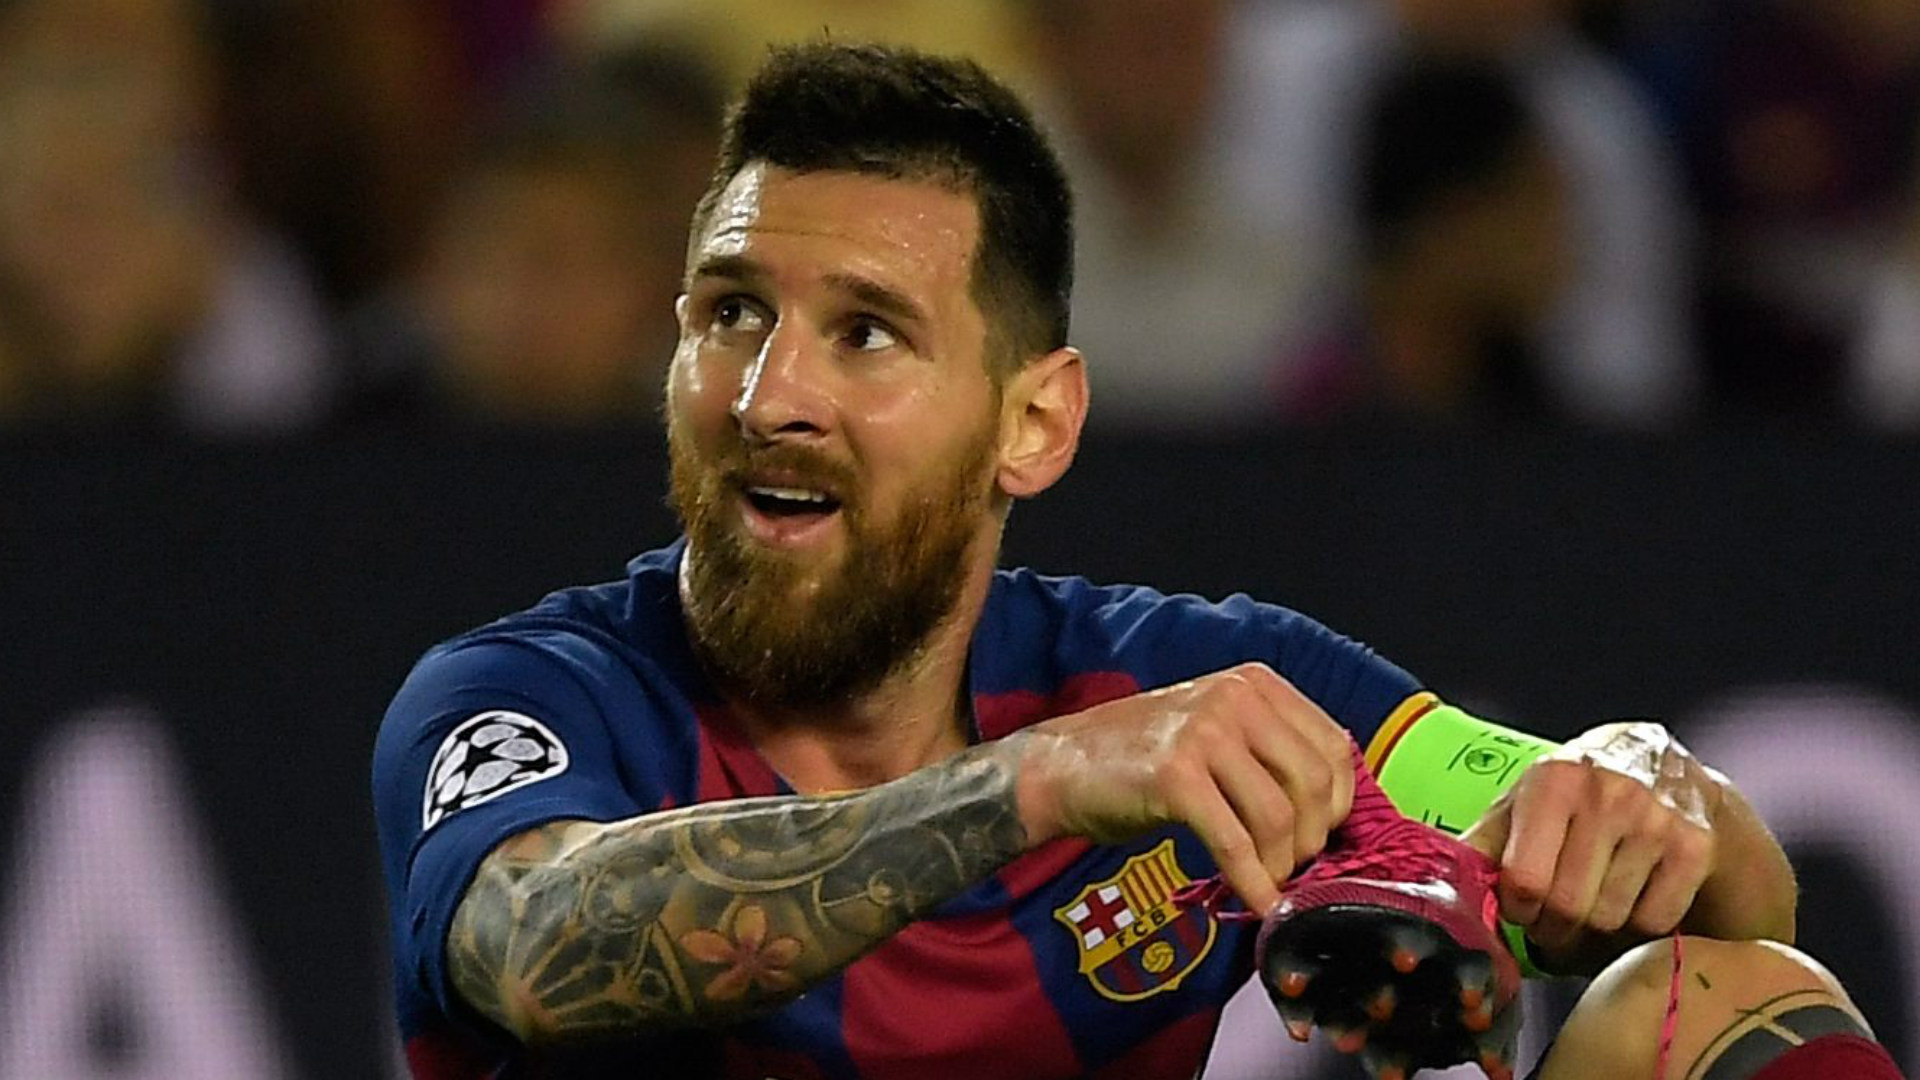 'They wait for Messi to do something' - Wenger says Barcelona 'play like a team in crisis'